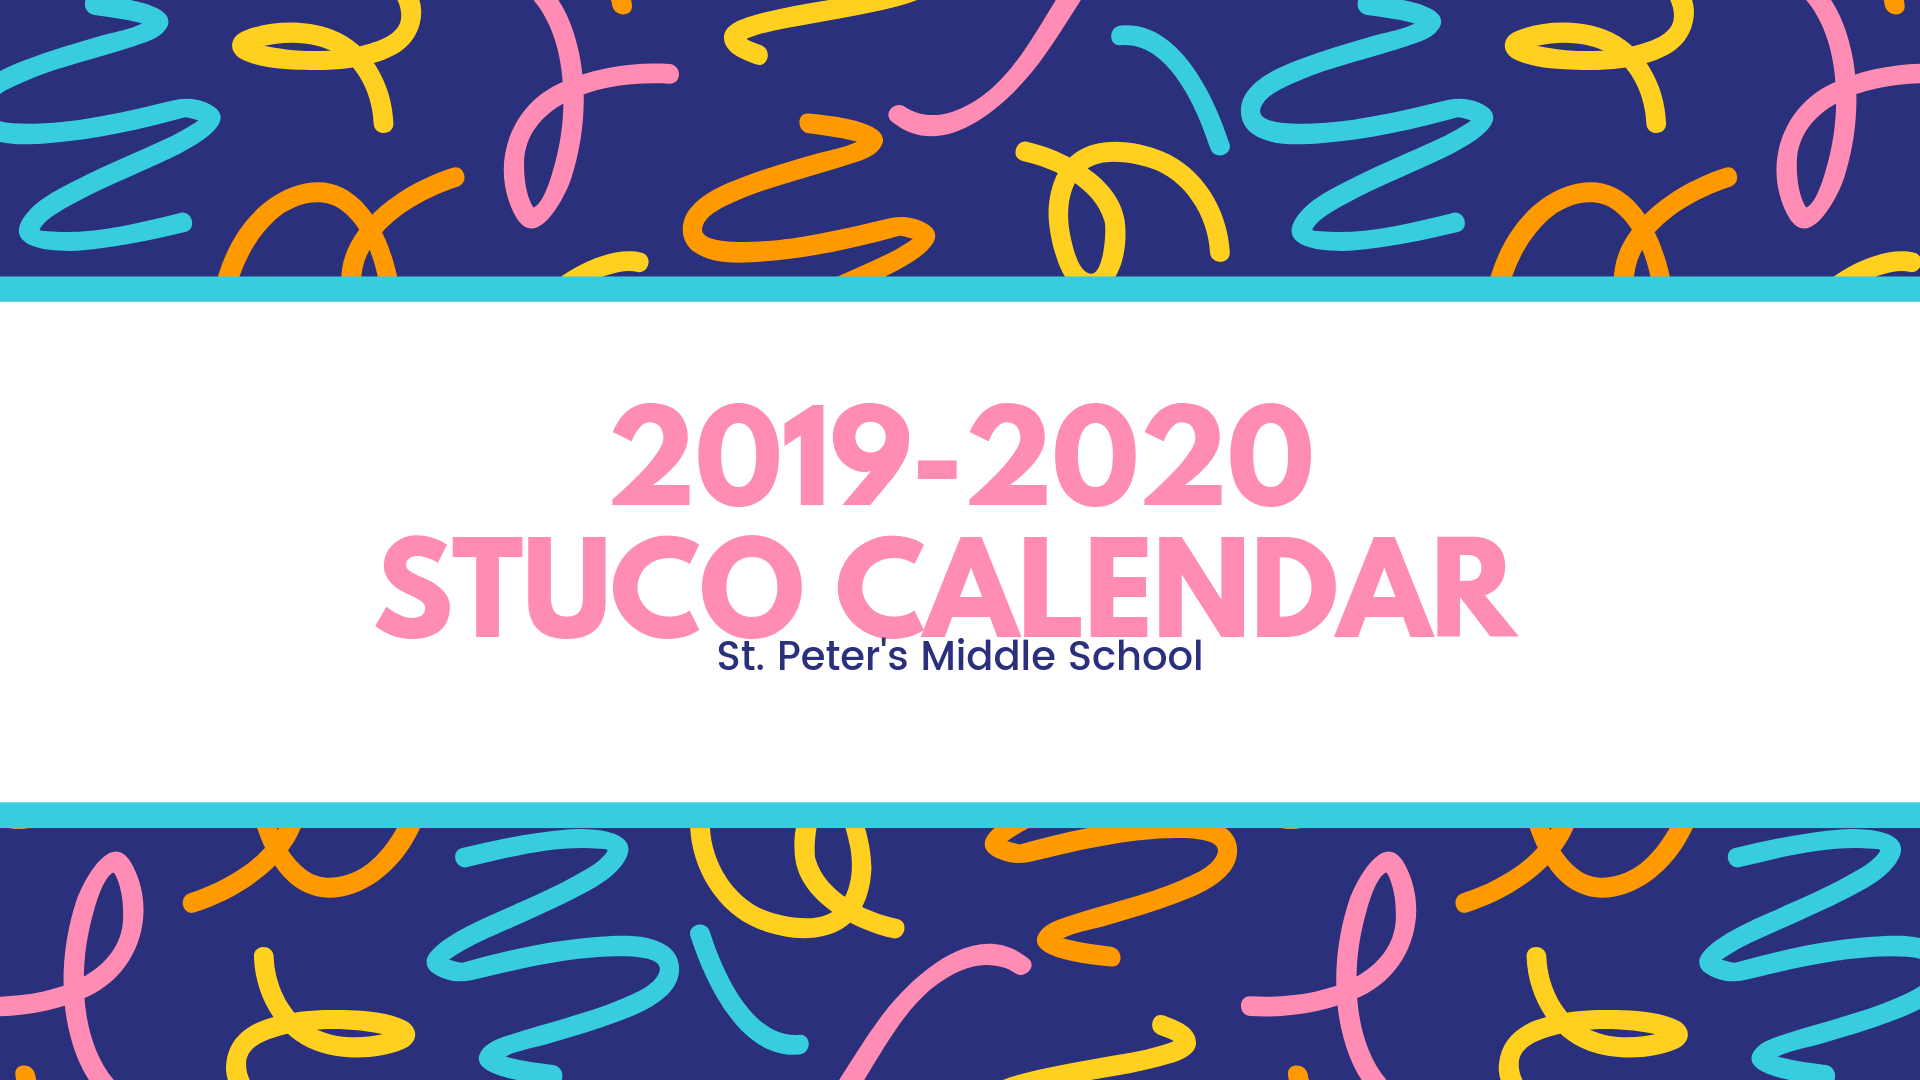 St. Peter's STUCO Calendar